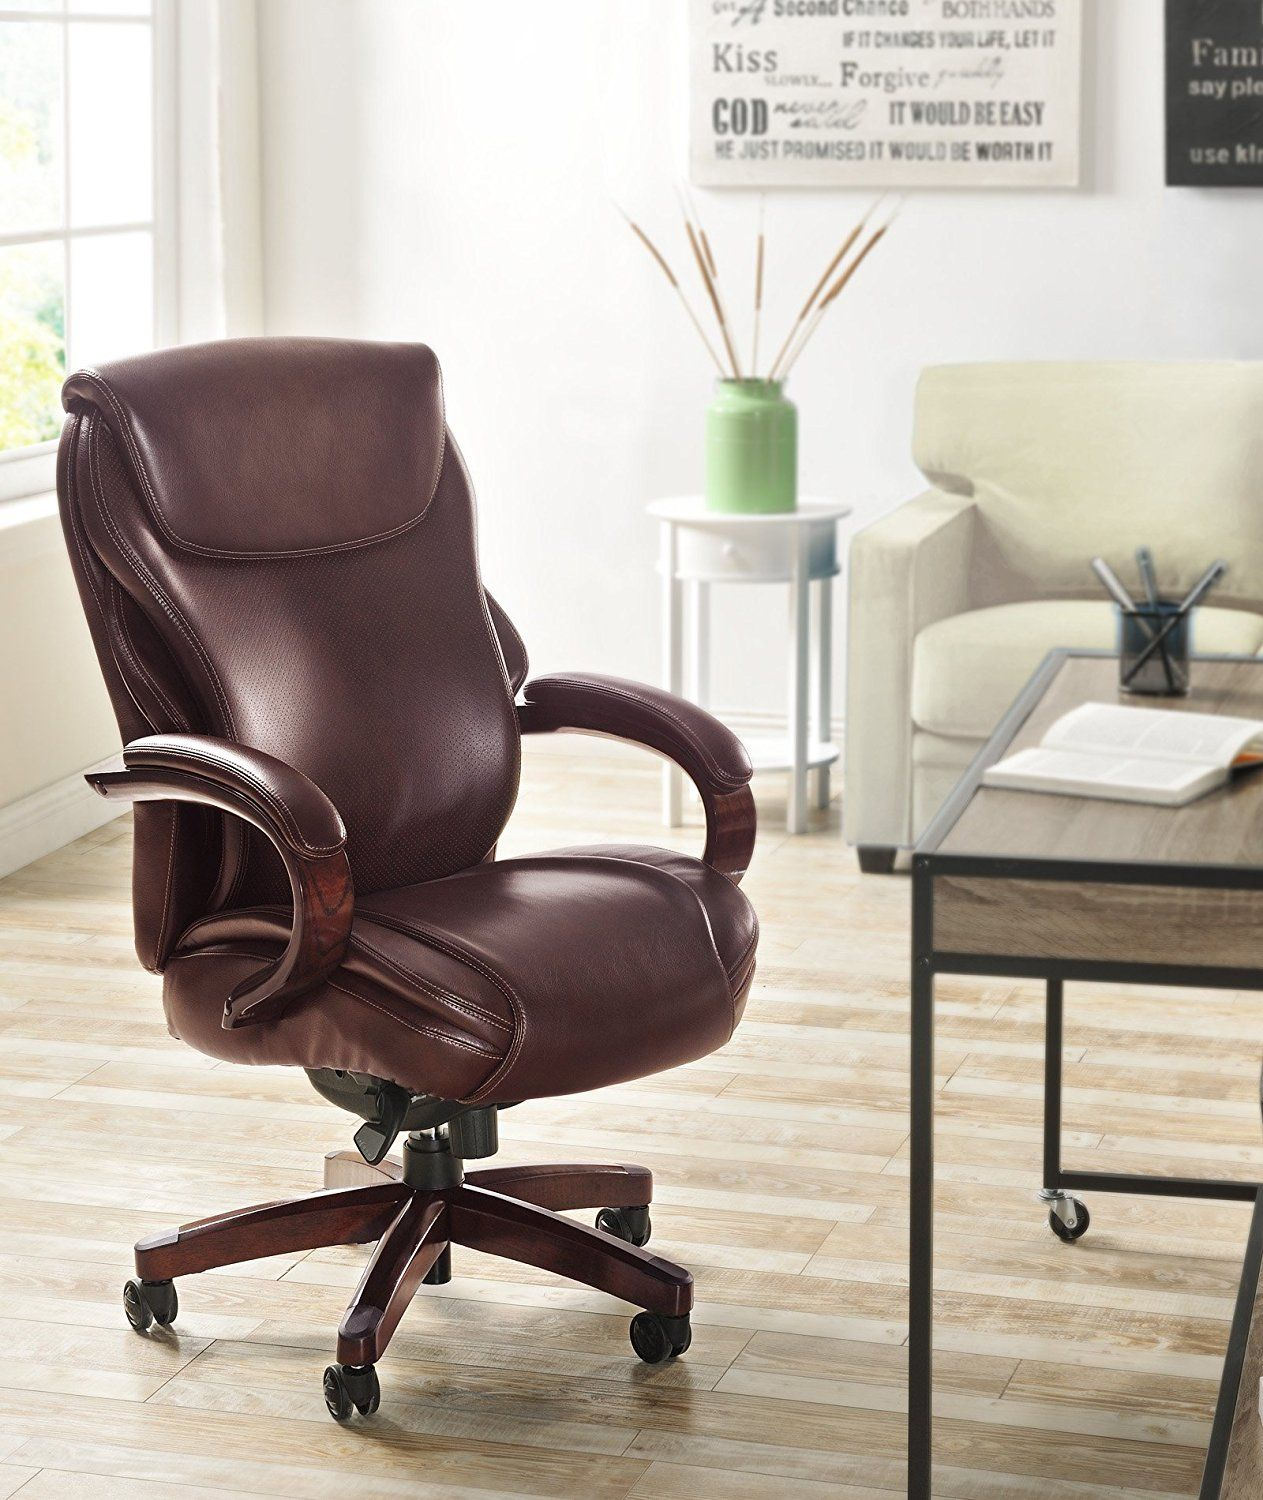 wooden executive office chairs | Executive chair | Pinterest ...